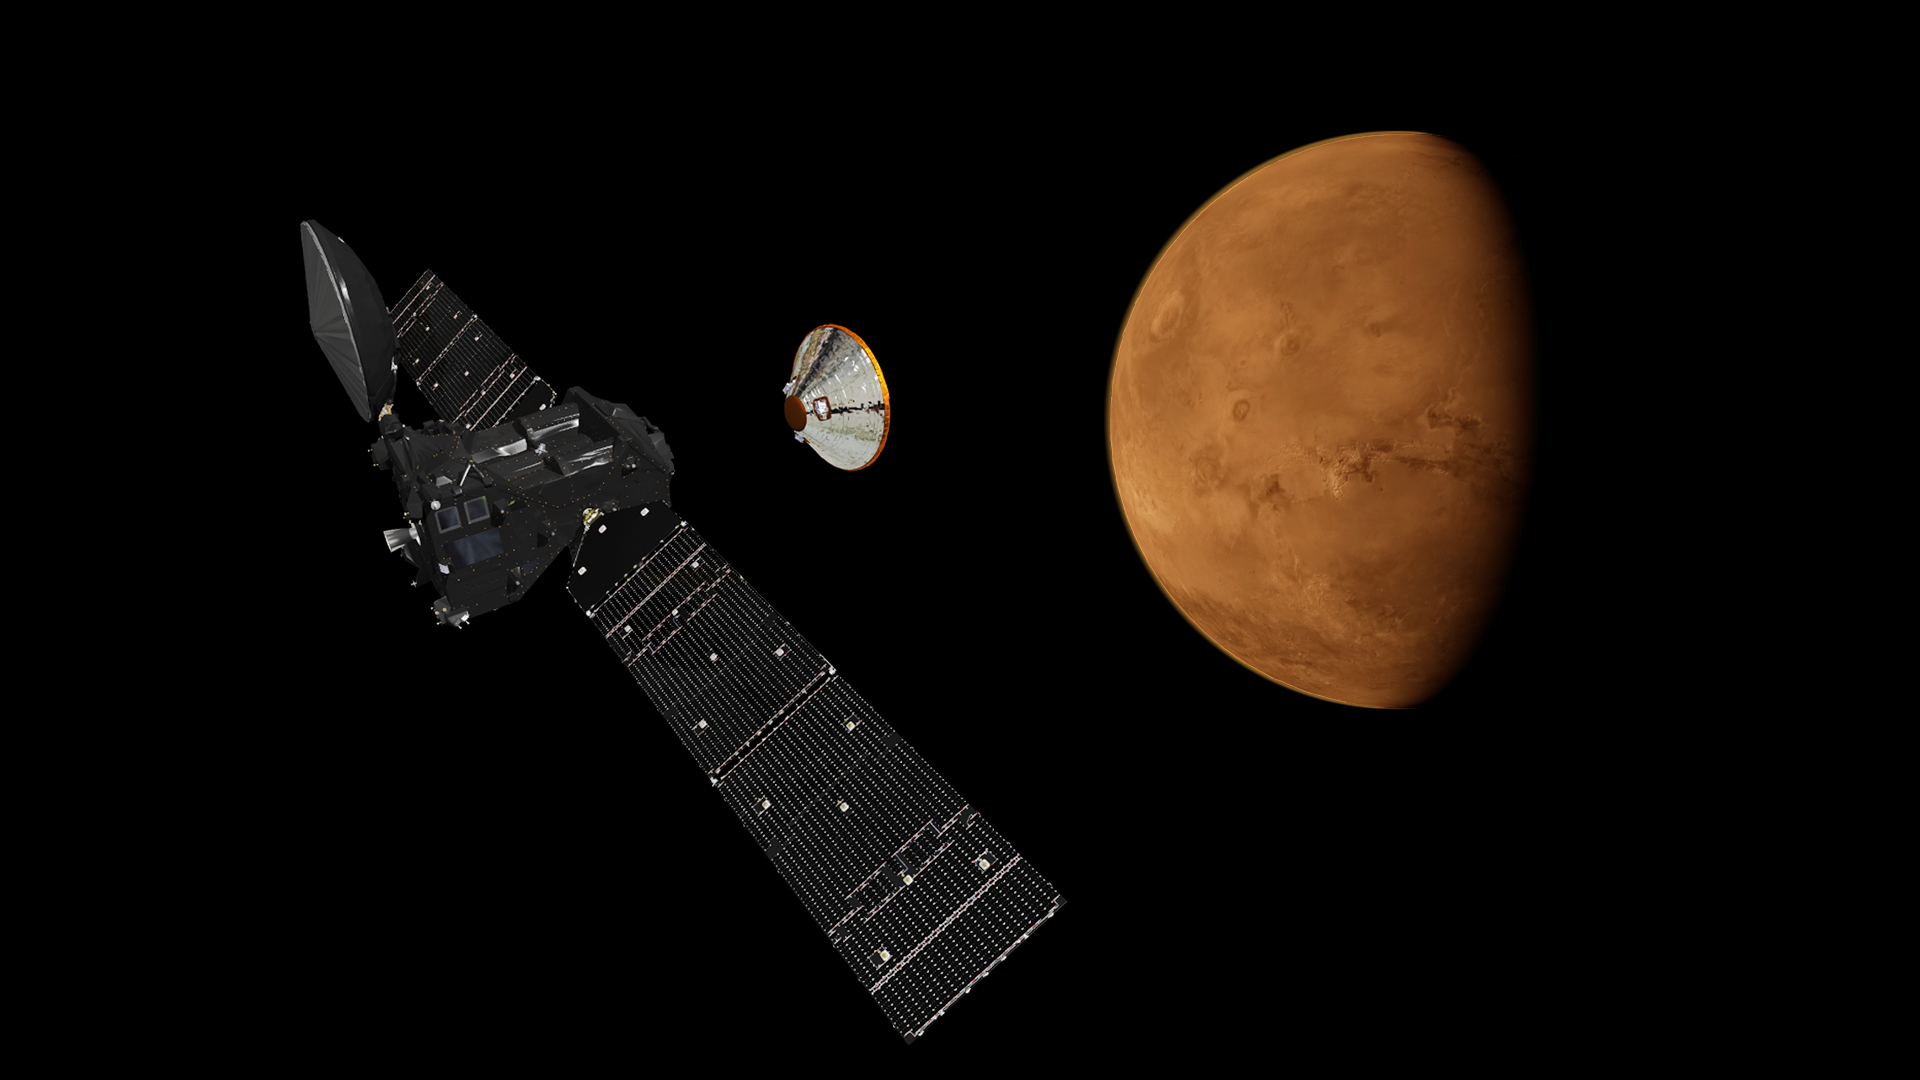 ExoMars 2016 Mission Overview – ExoMars | Spaceflight101